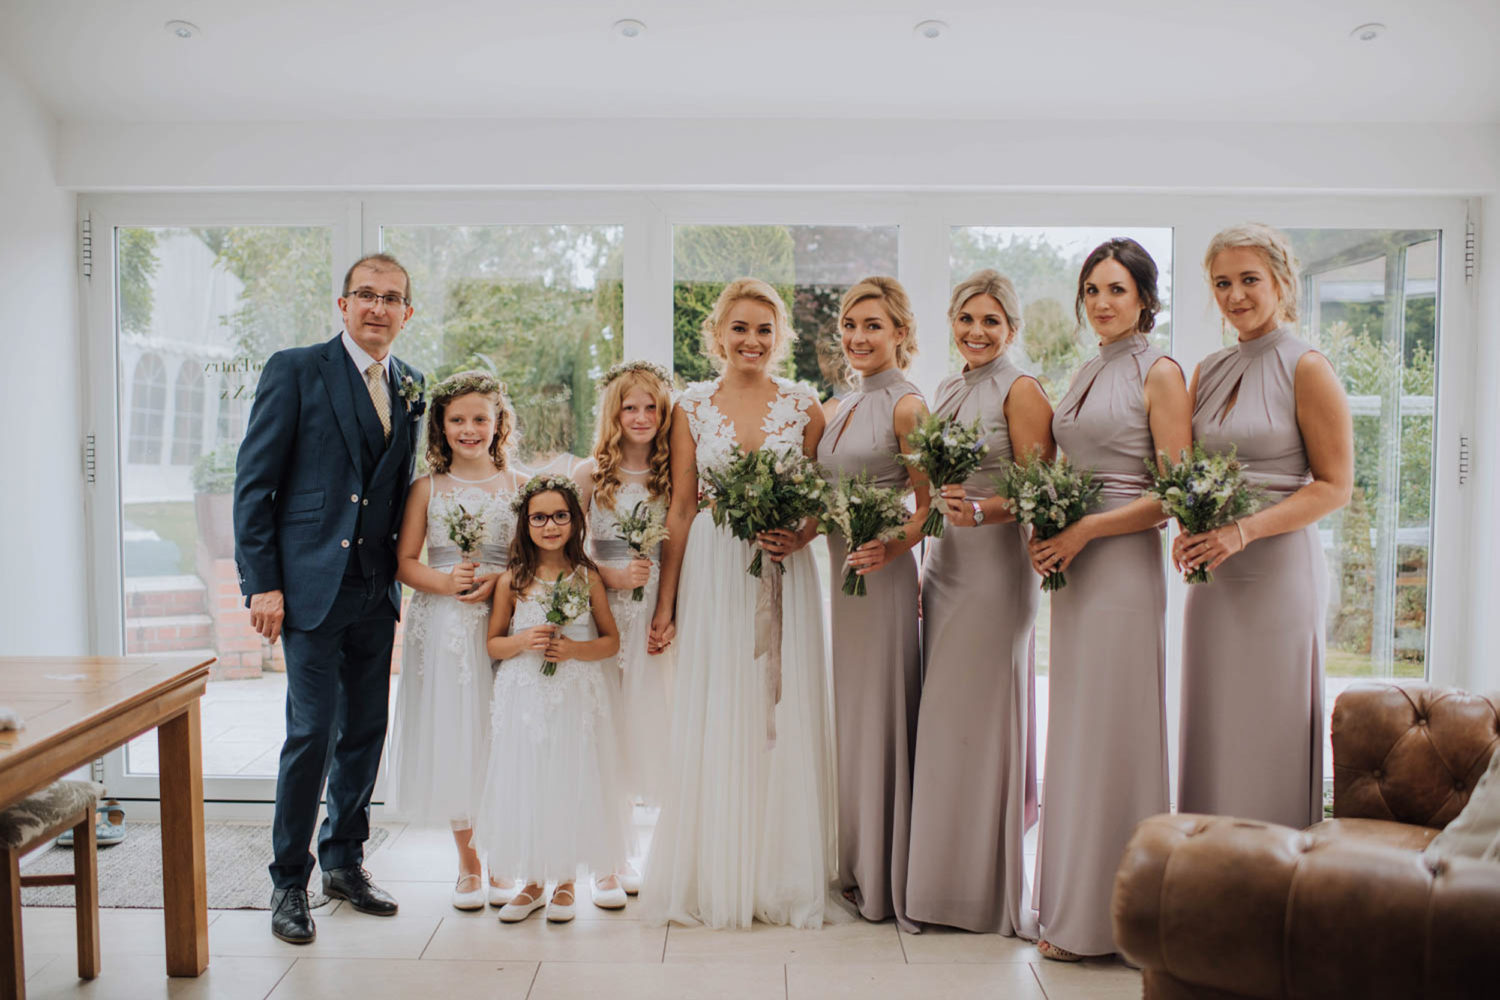 Norfolk_wedding_photos_Megan_Duffield_82